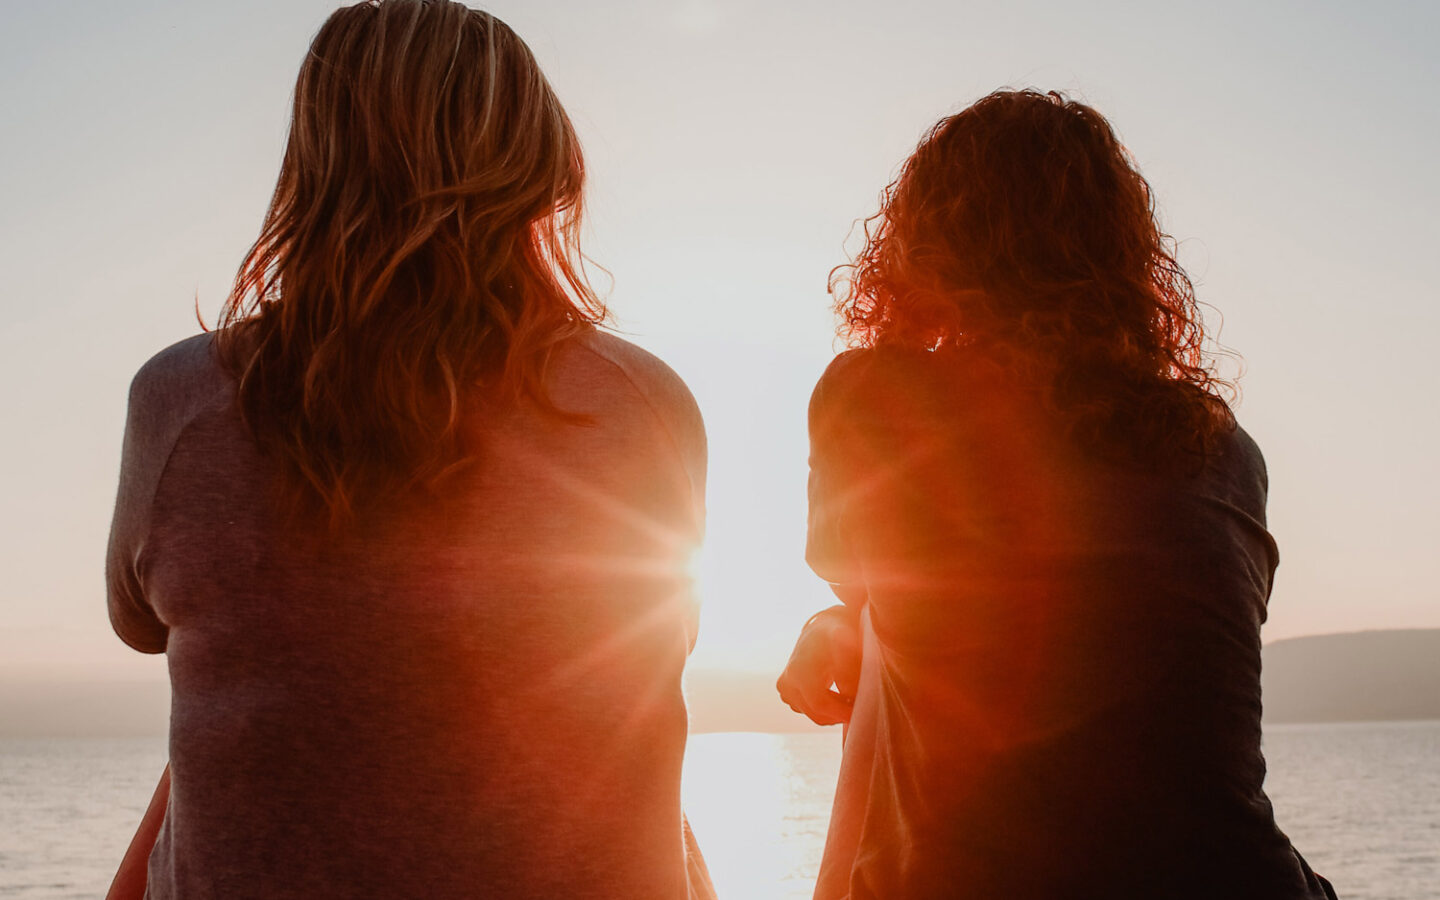 two women sit on dock over water during sunset